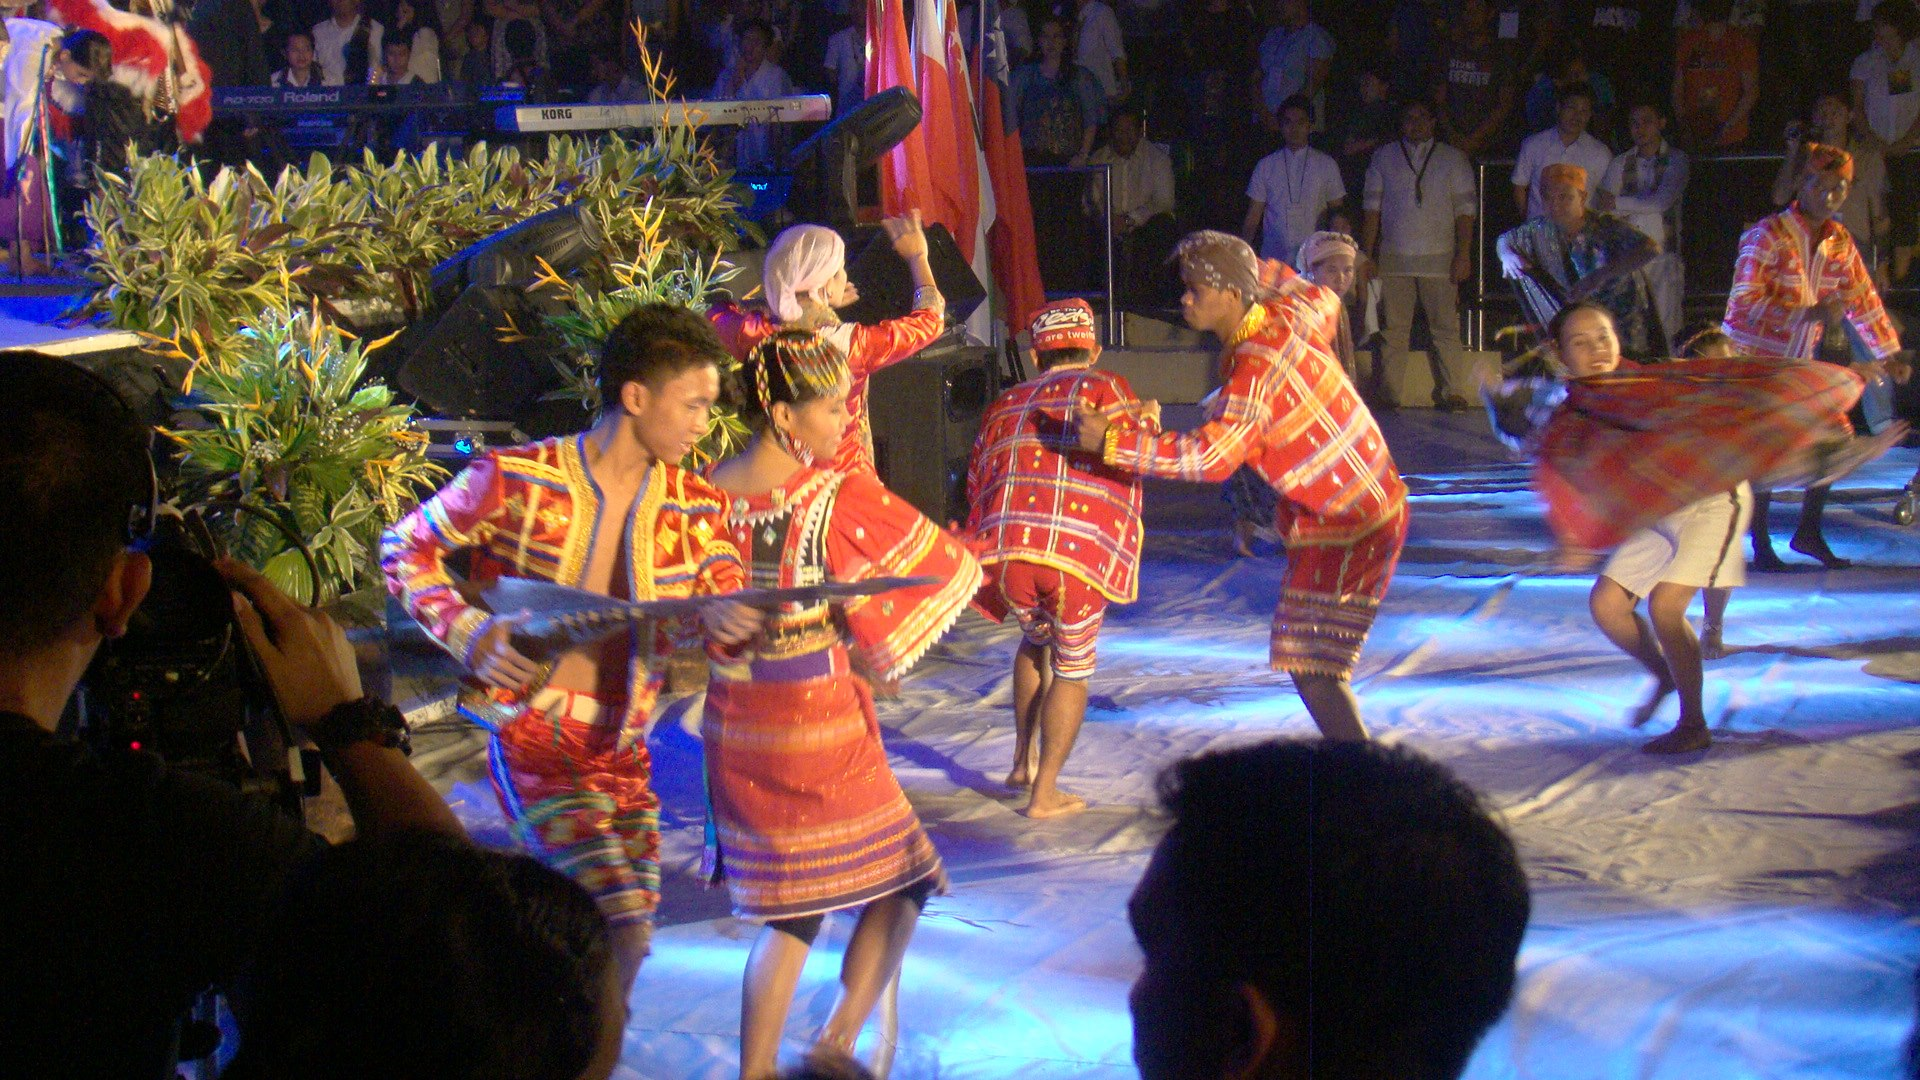 The Indigenous tribes and their graceful dancing.